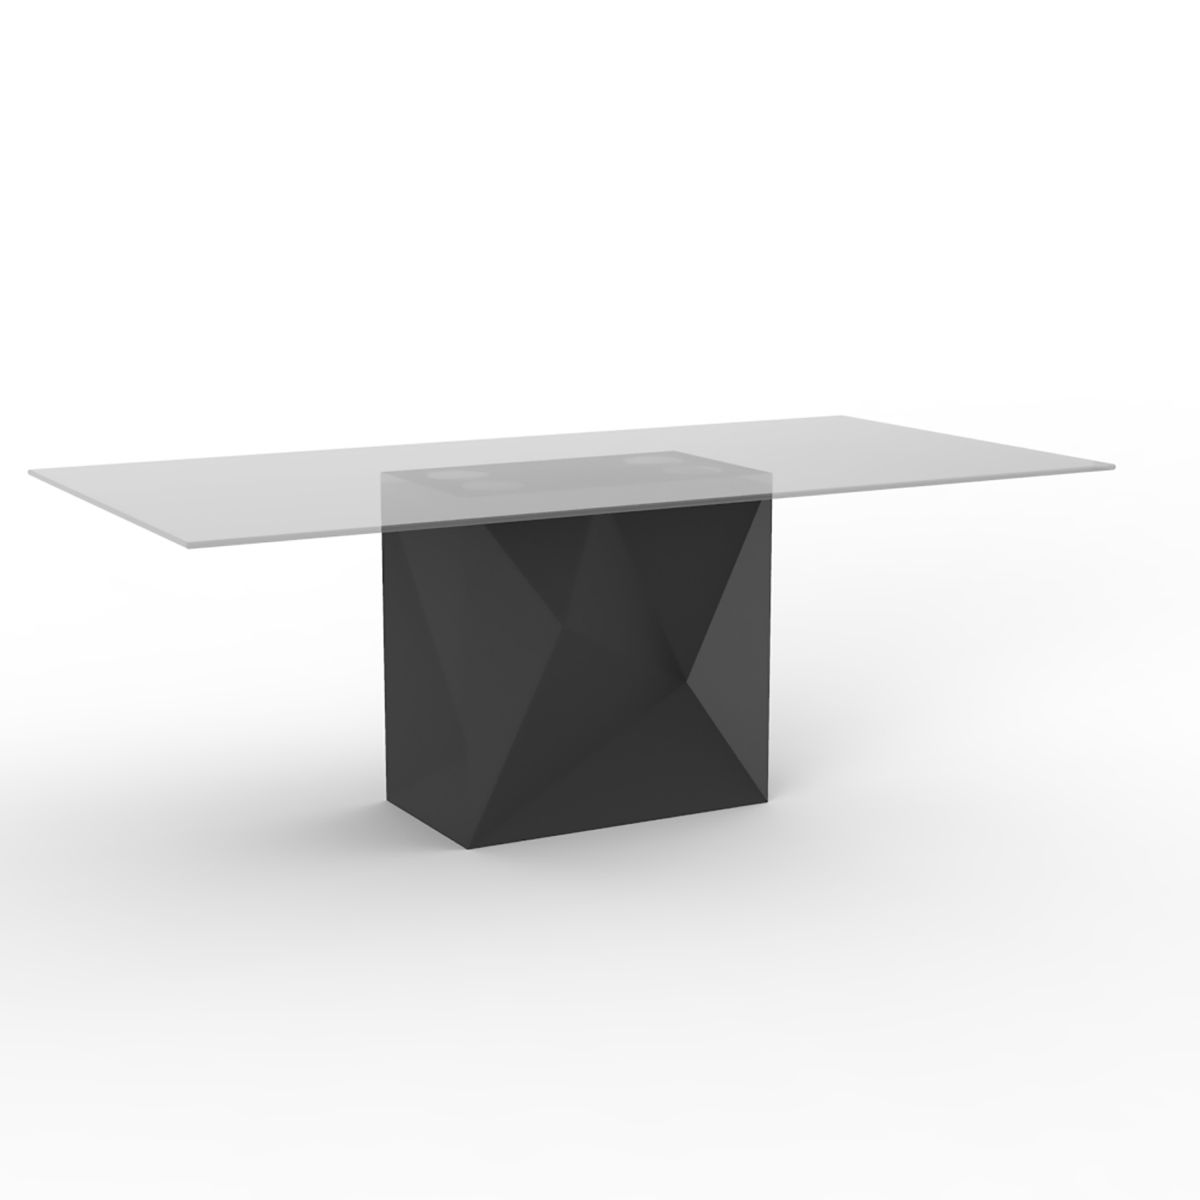 Table blanche design de repas faz hpl vondom zendart design for Table exterieur hpl